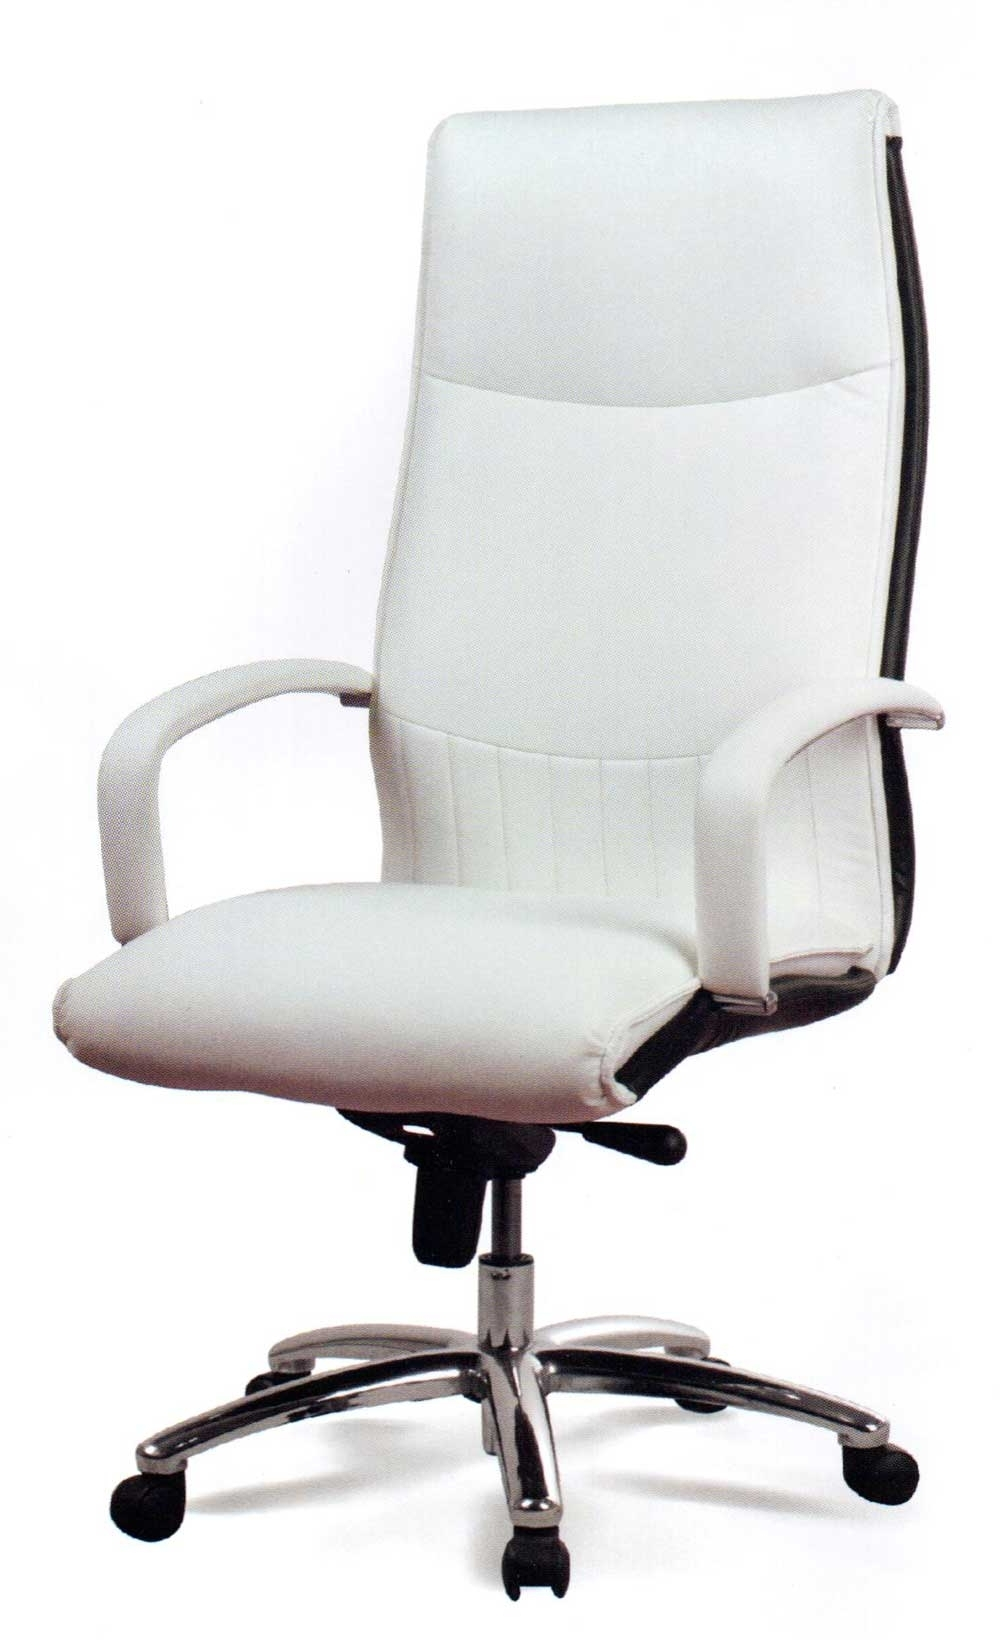 Home Decor And Design Regarding Ergonomic Ultra Modern White Executive Office Chairs (View 6 of 20)